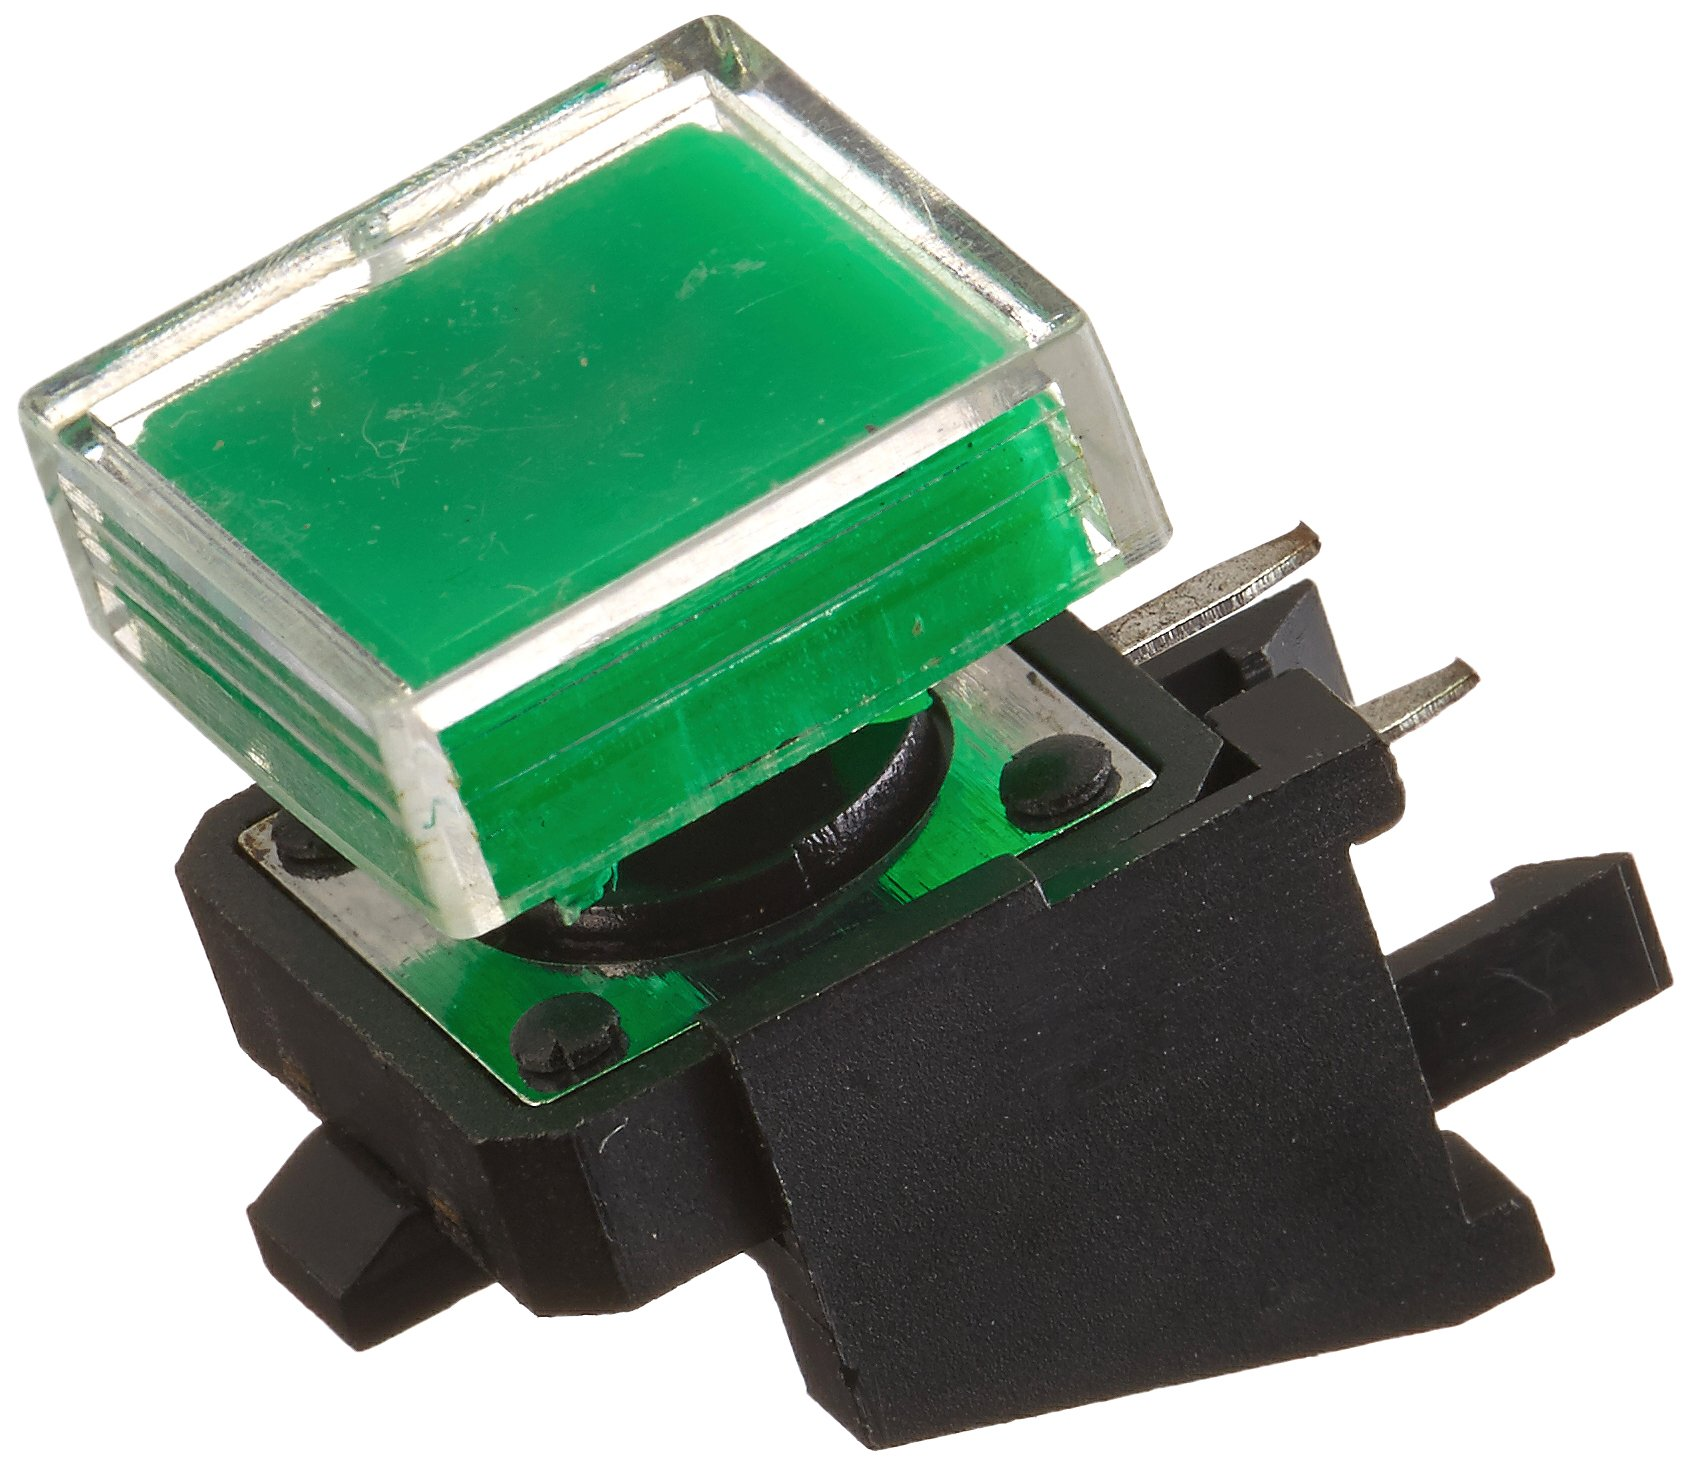 Uxcell Right Angle Momentary Tactile/Tact Switch, 12 x 12 x 10mm